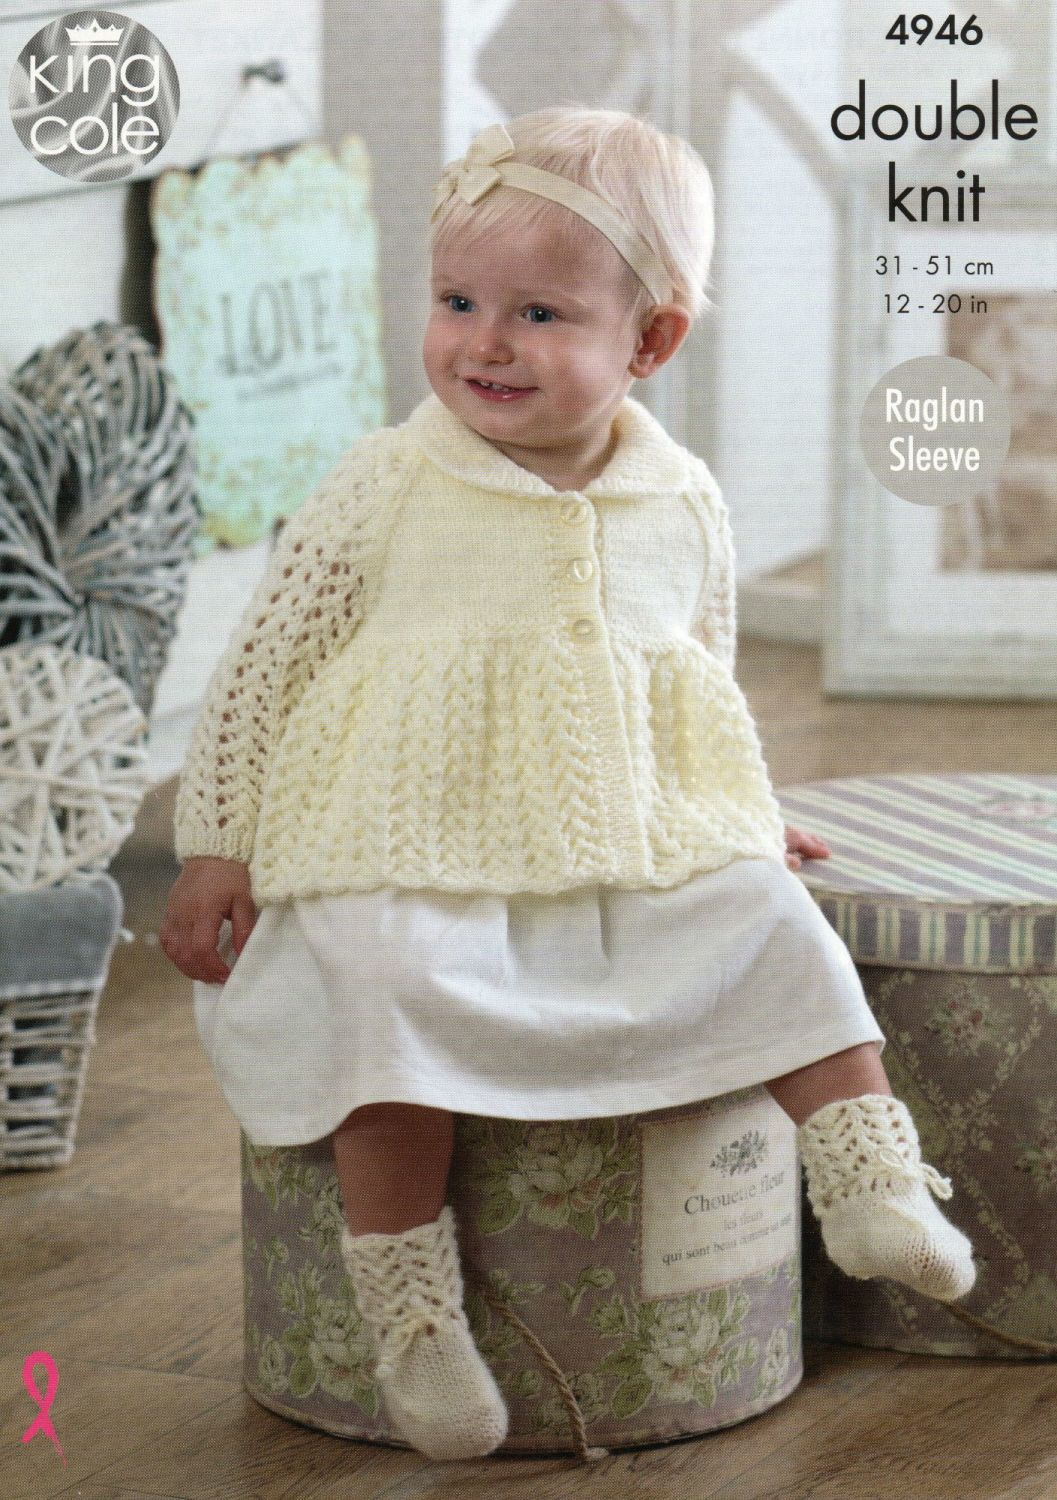 4946 - JACKET, BONNET, MITTENS, BOOTEES AND BLANKET  BY KING COLE IN DOUBLE